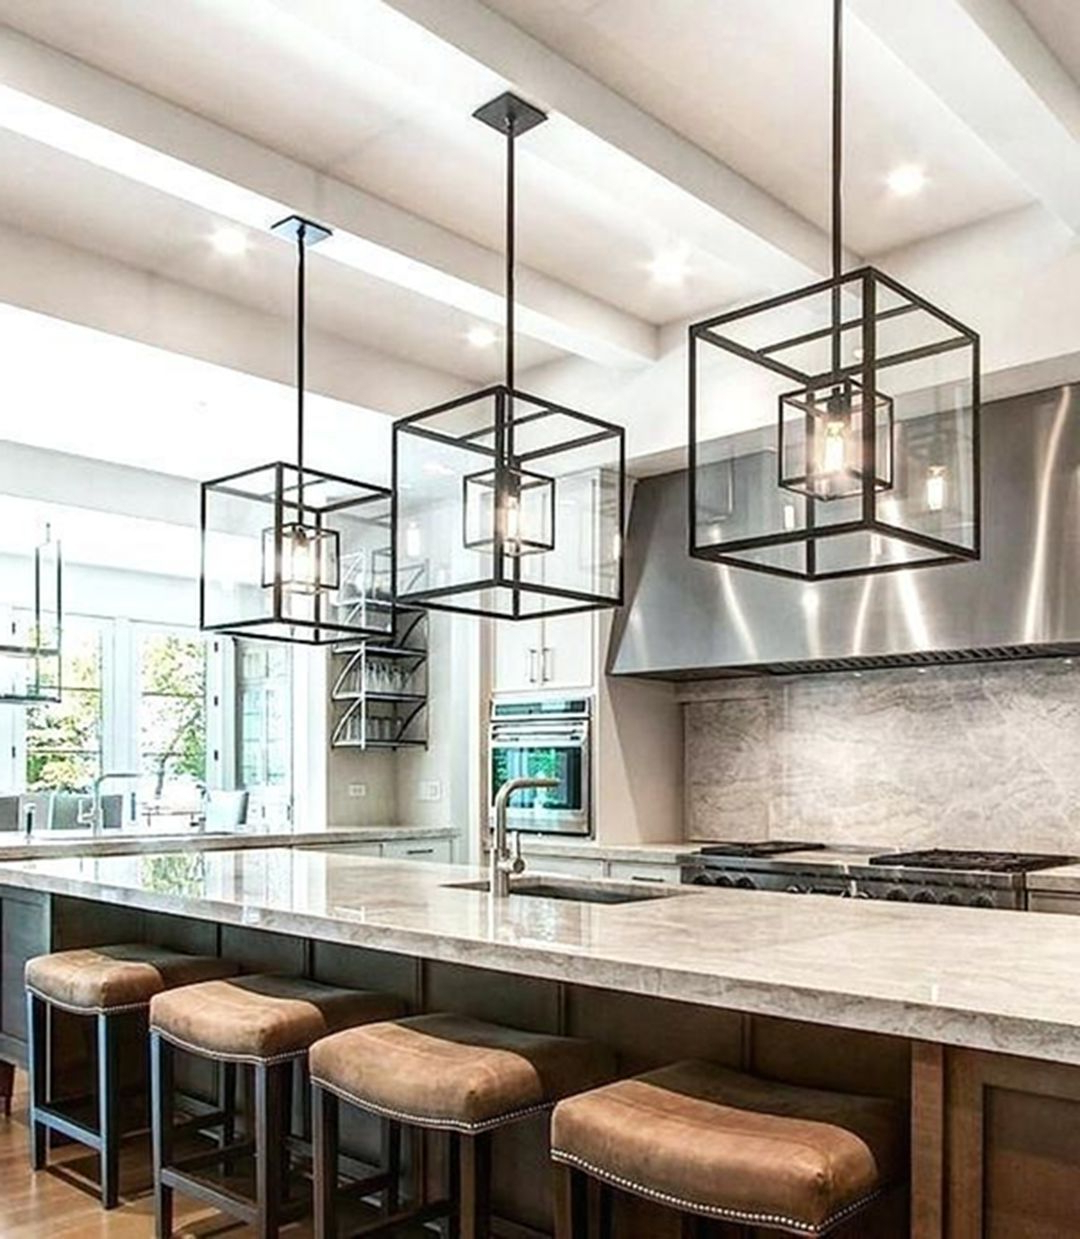 10 Most Creative Modern Pendant Kitchen Light Ideas For